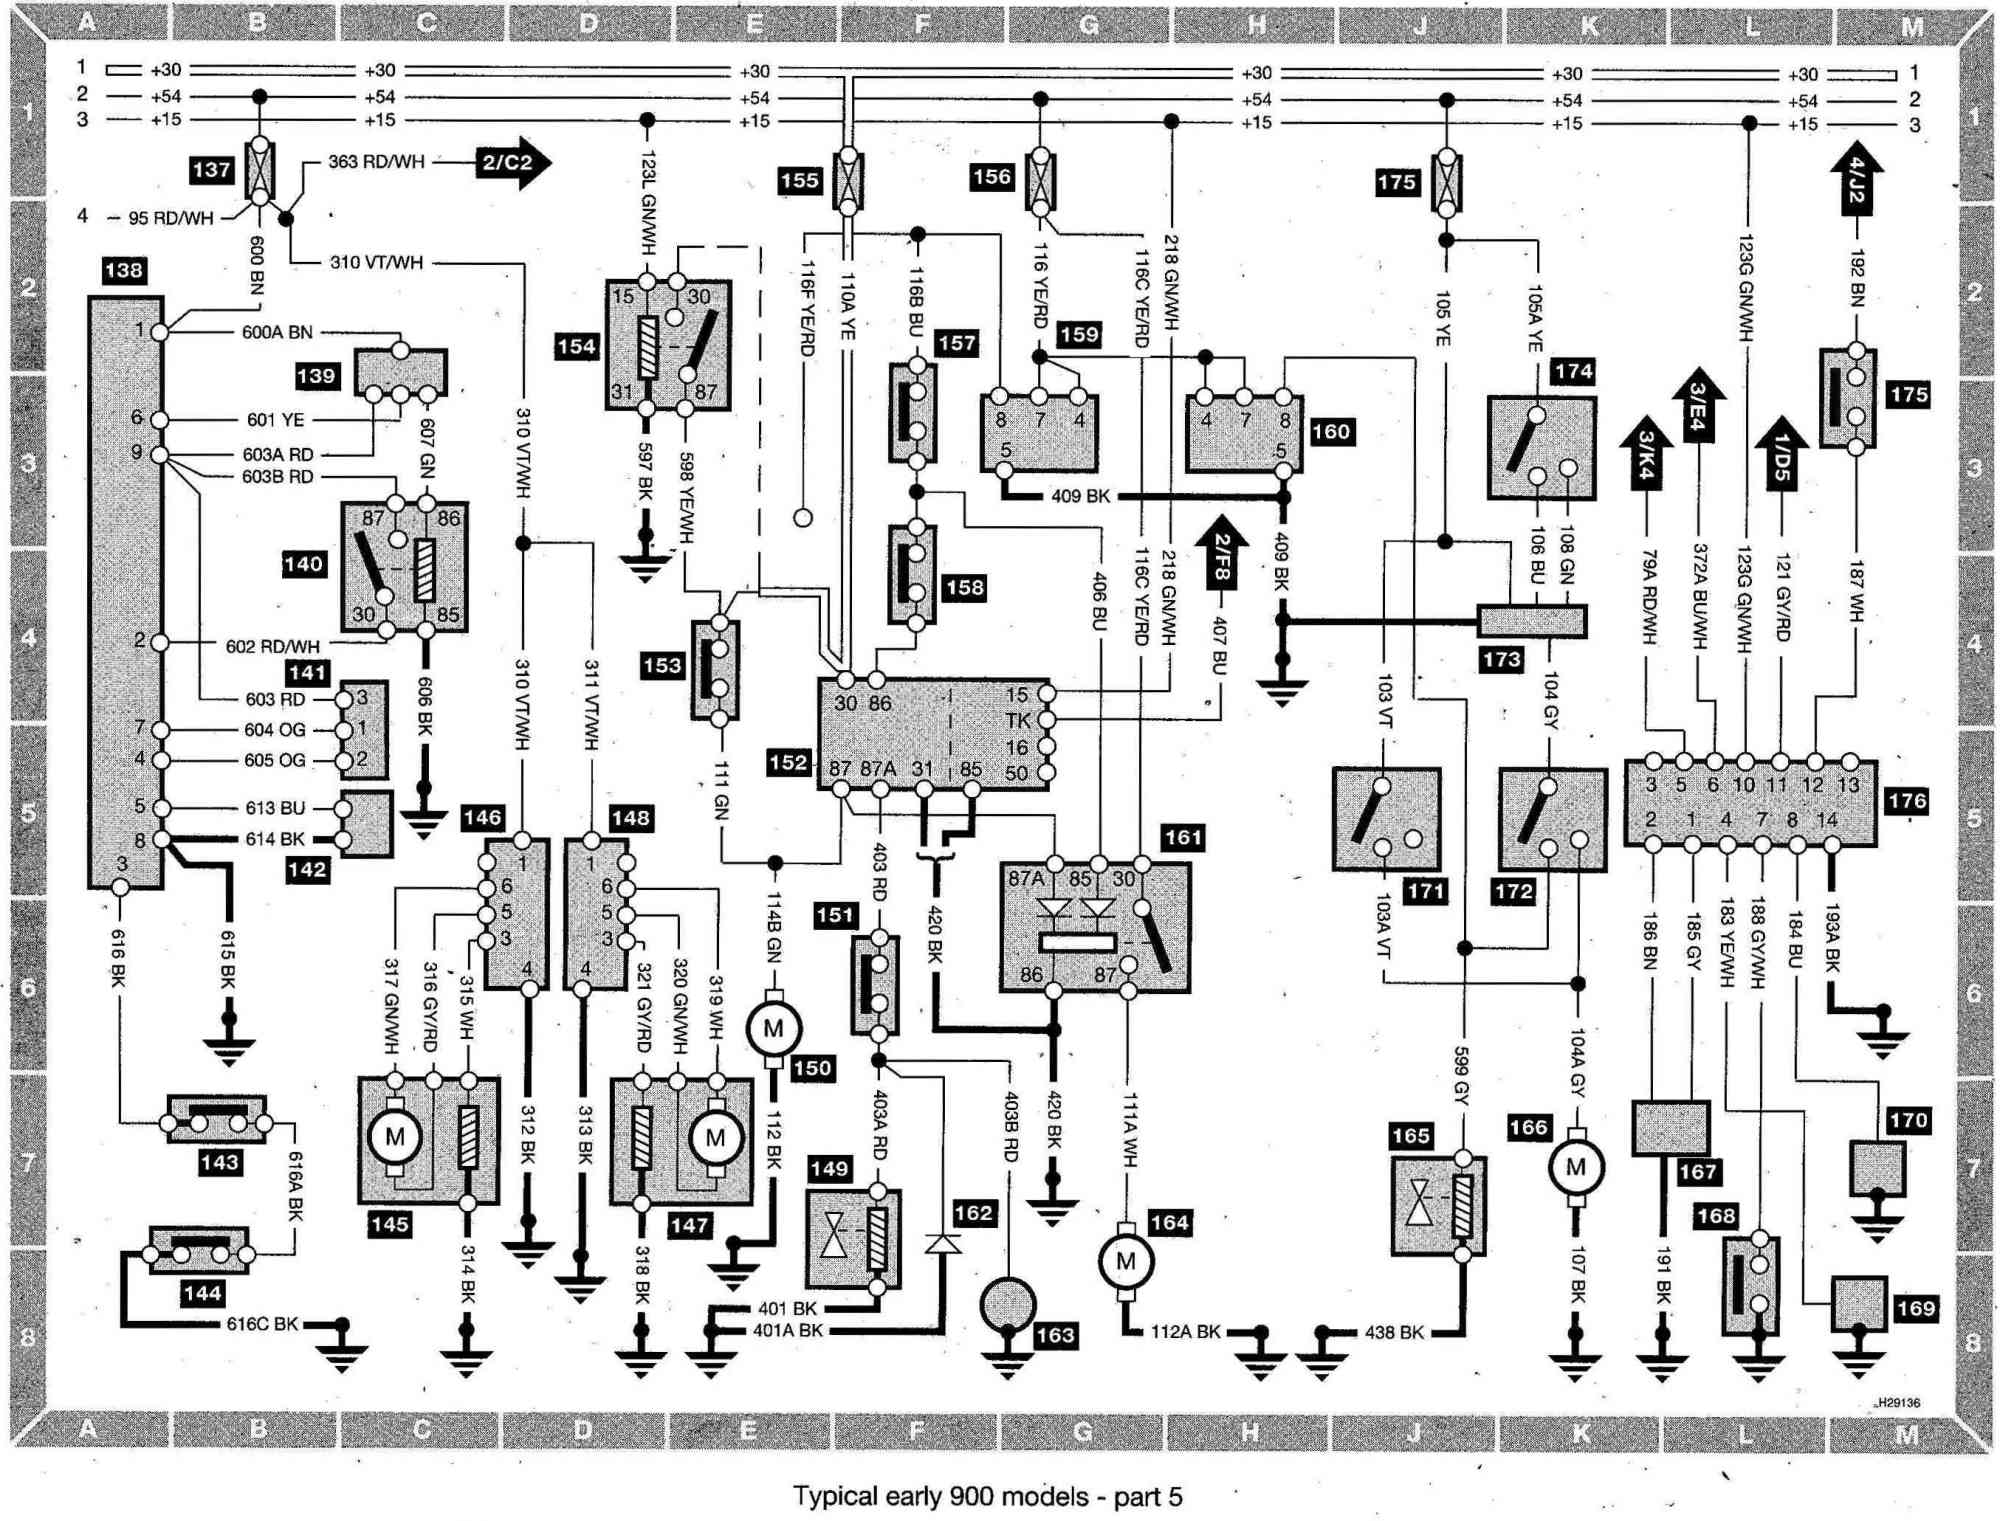 hight resolution of wrg 3124 saab radio wiring diagramssaab wiring harness saab free engine image for user 2003